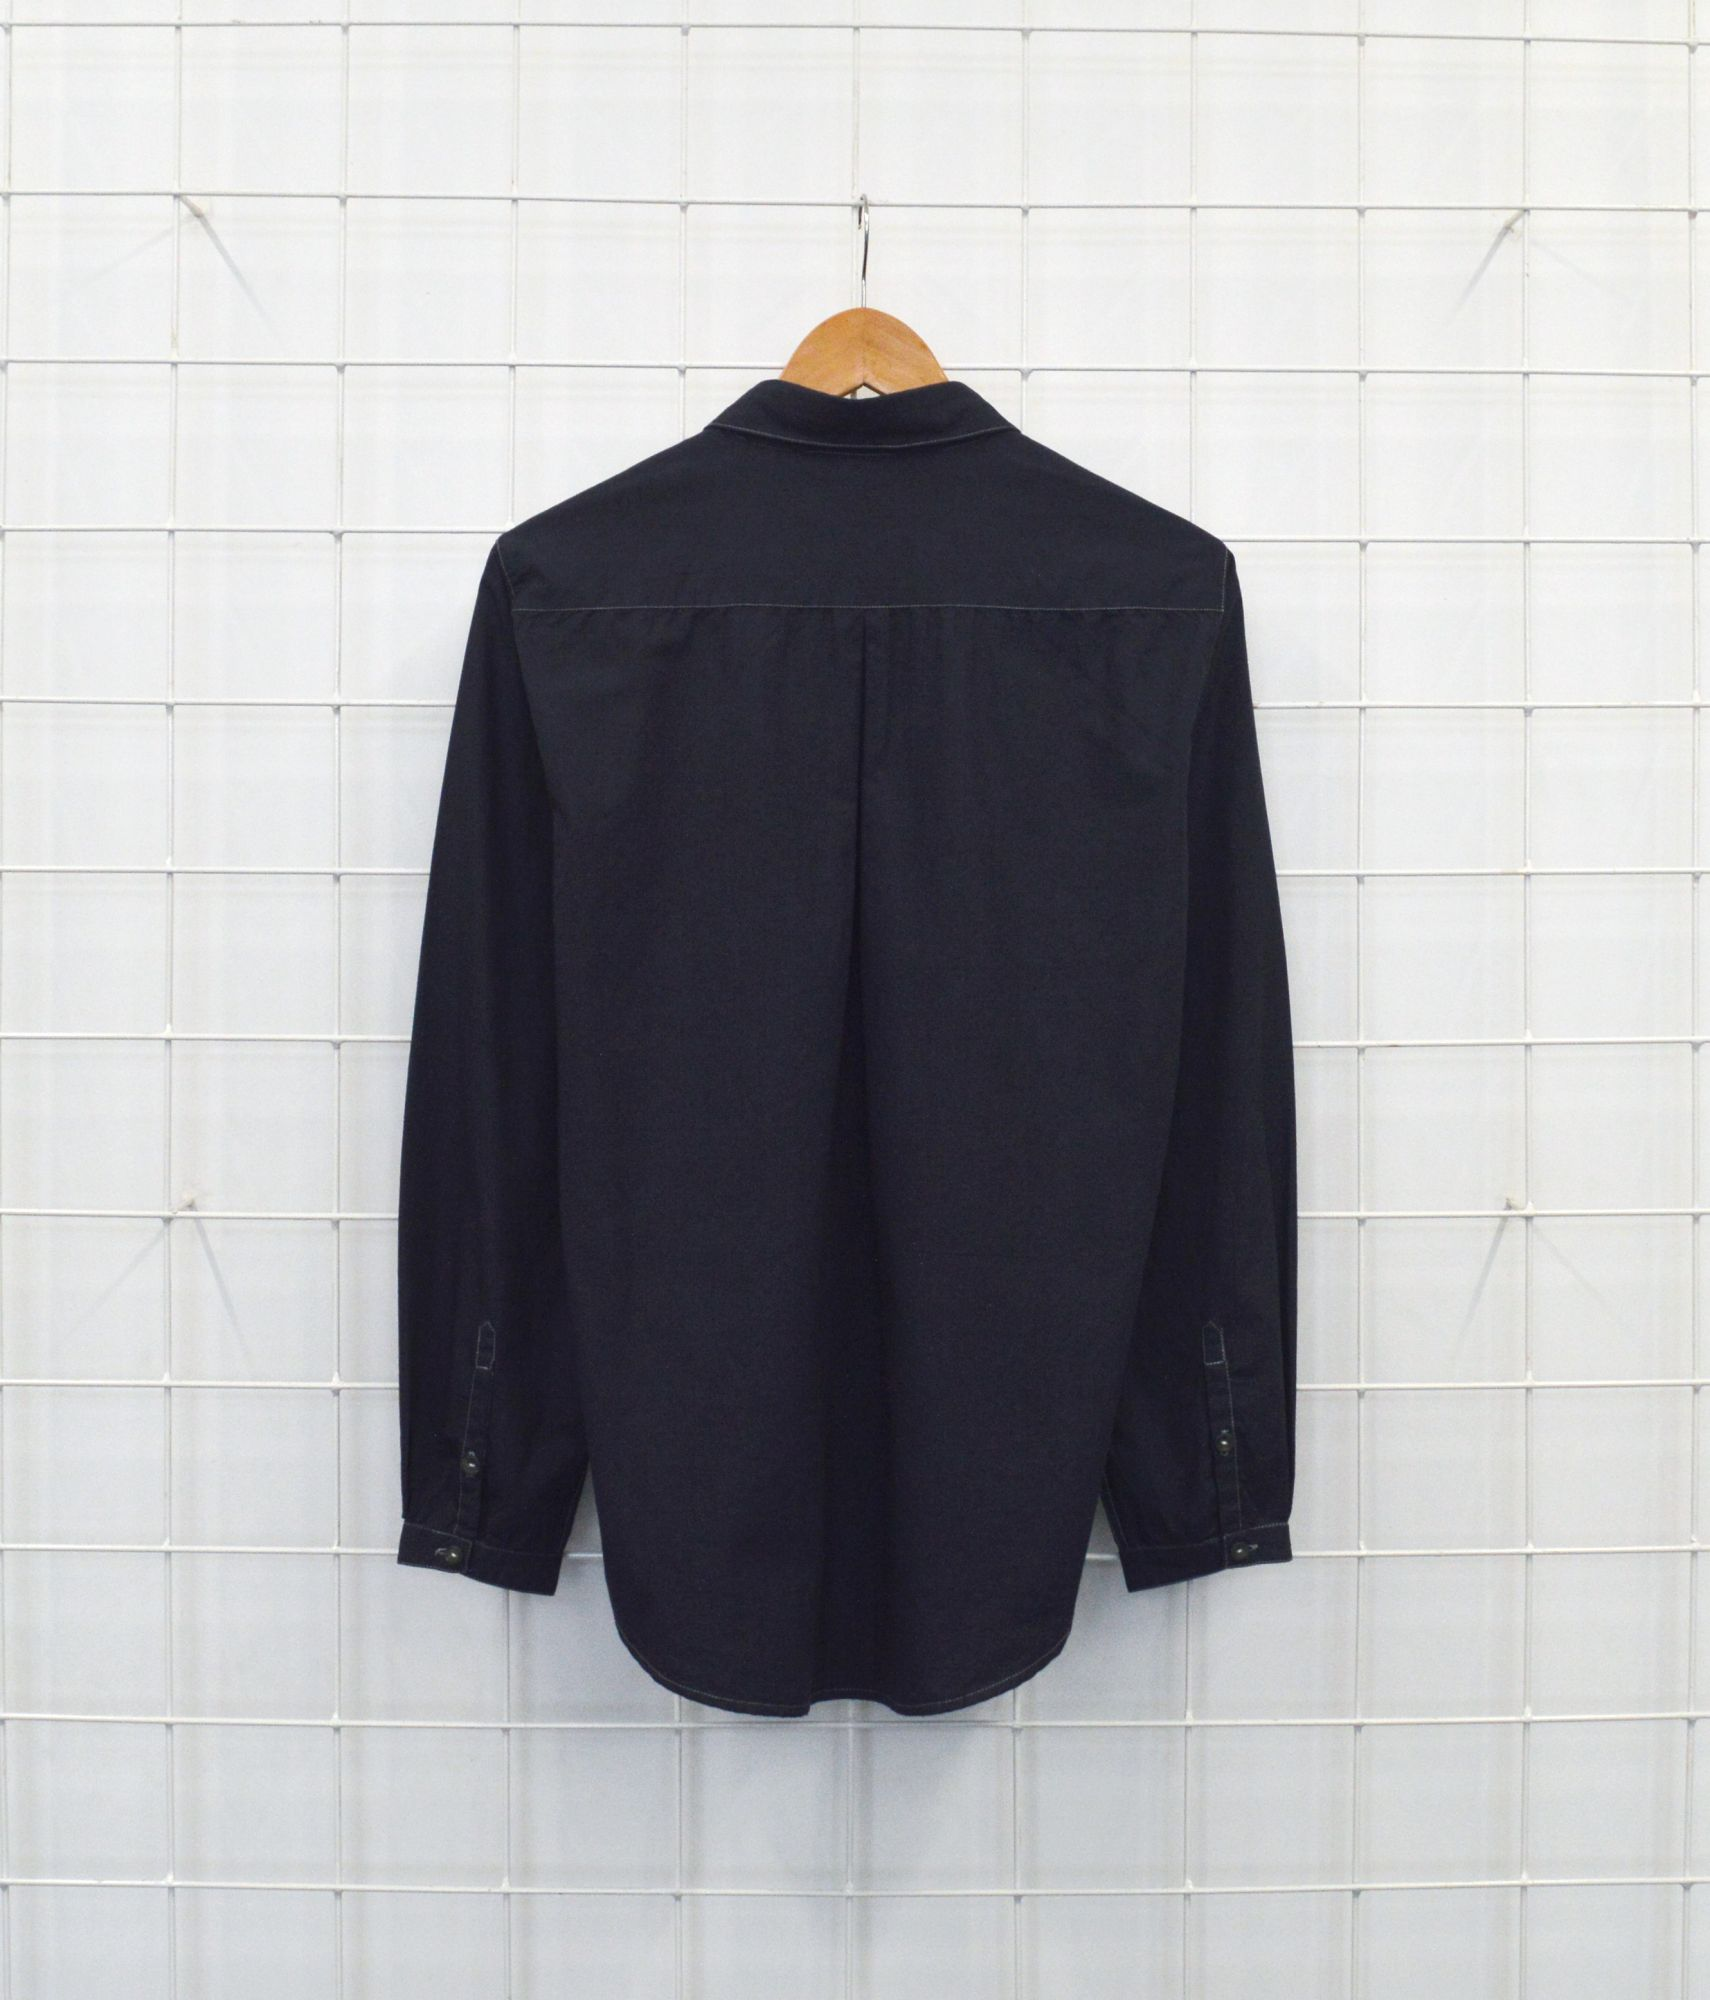 Overdyed Shirt - Indigo